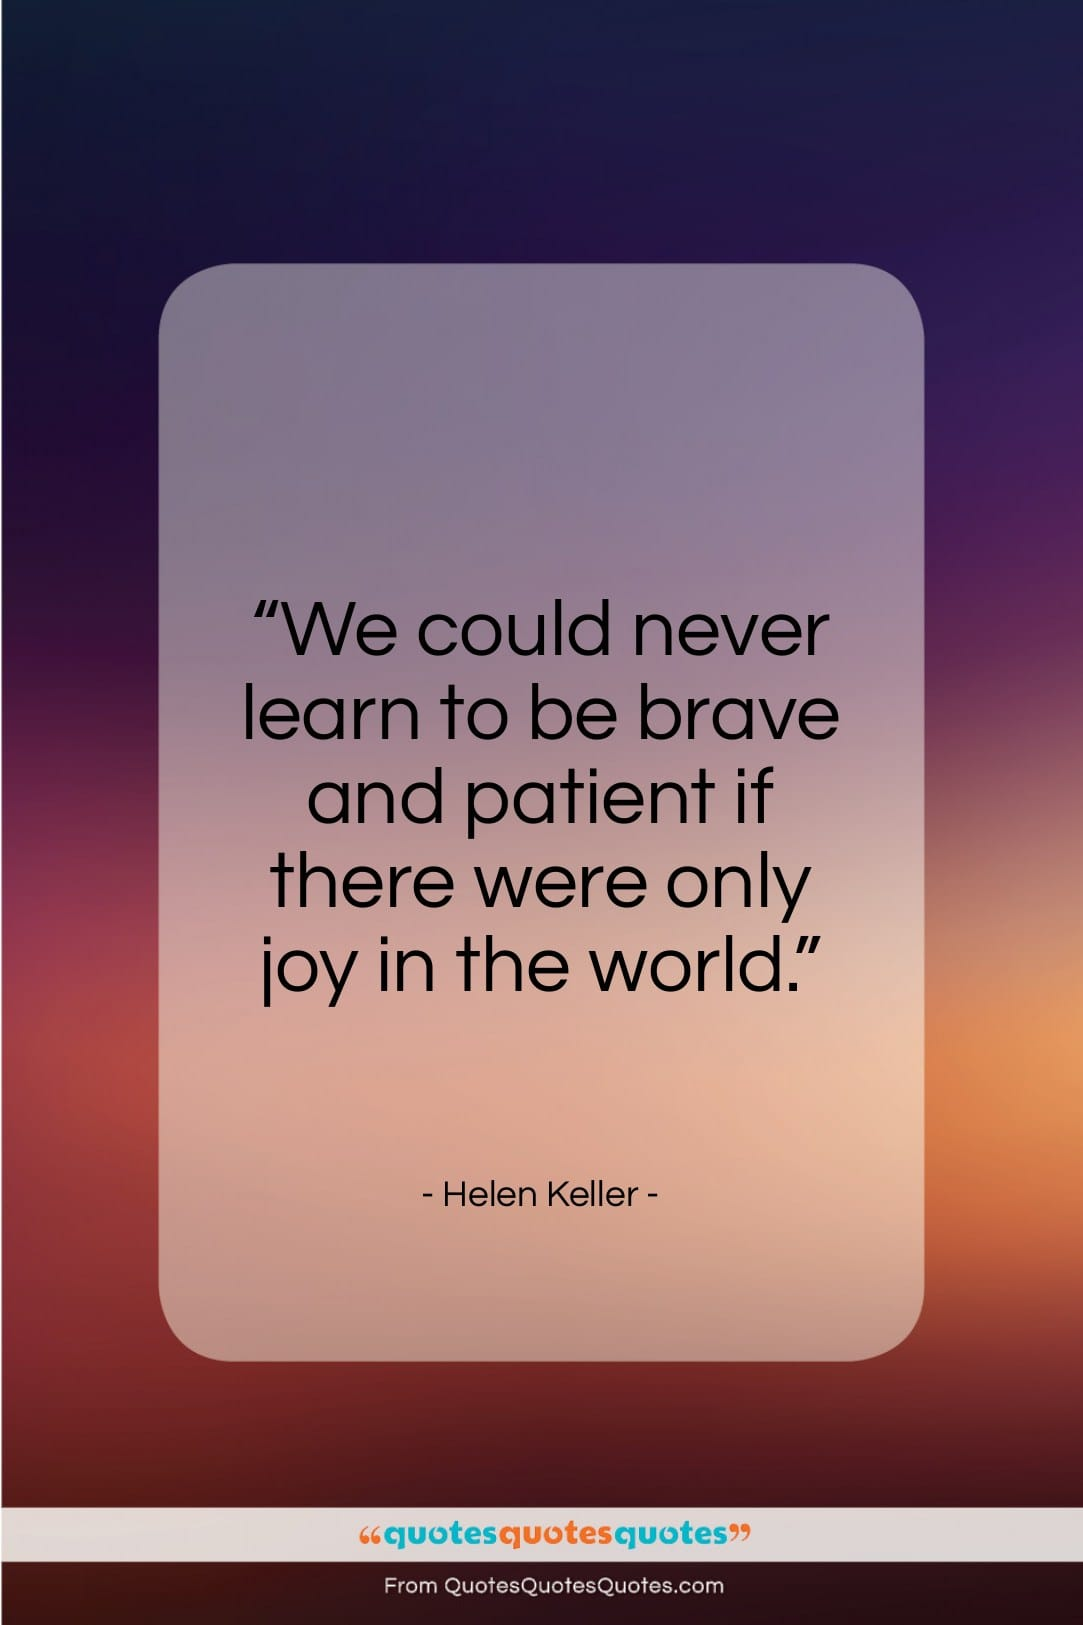 Helen Keller Quotes   Get The Whole Helen Keller Quote We Could Never Learn To